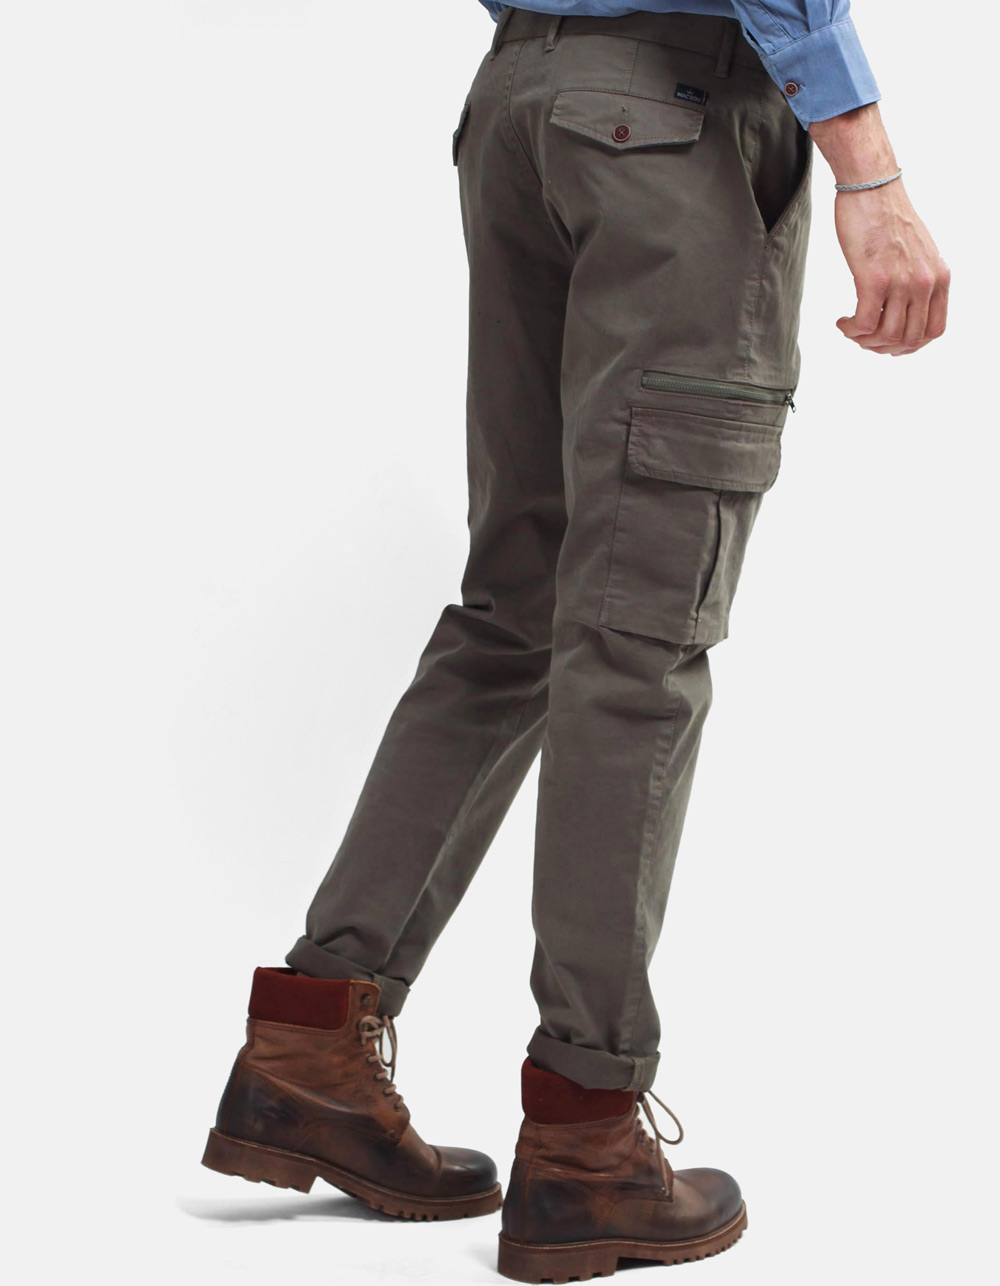 Green cargo trousers - Backside